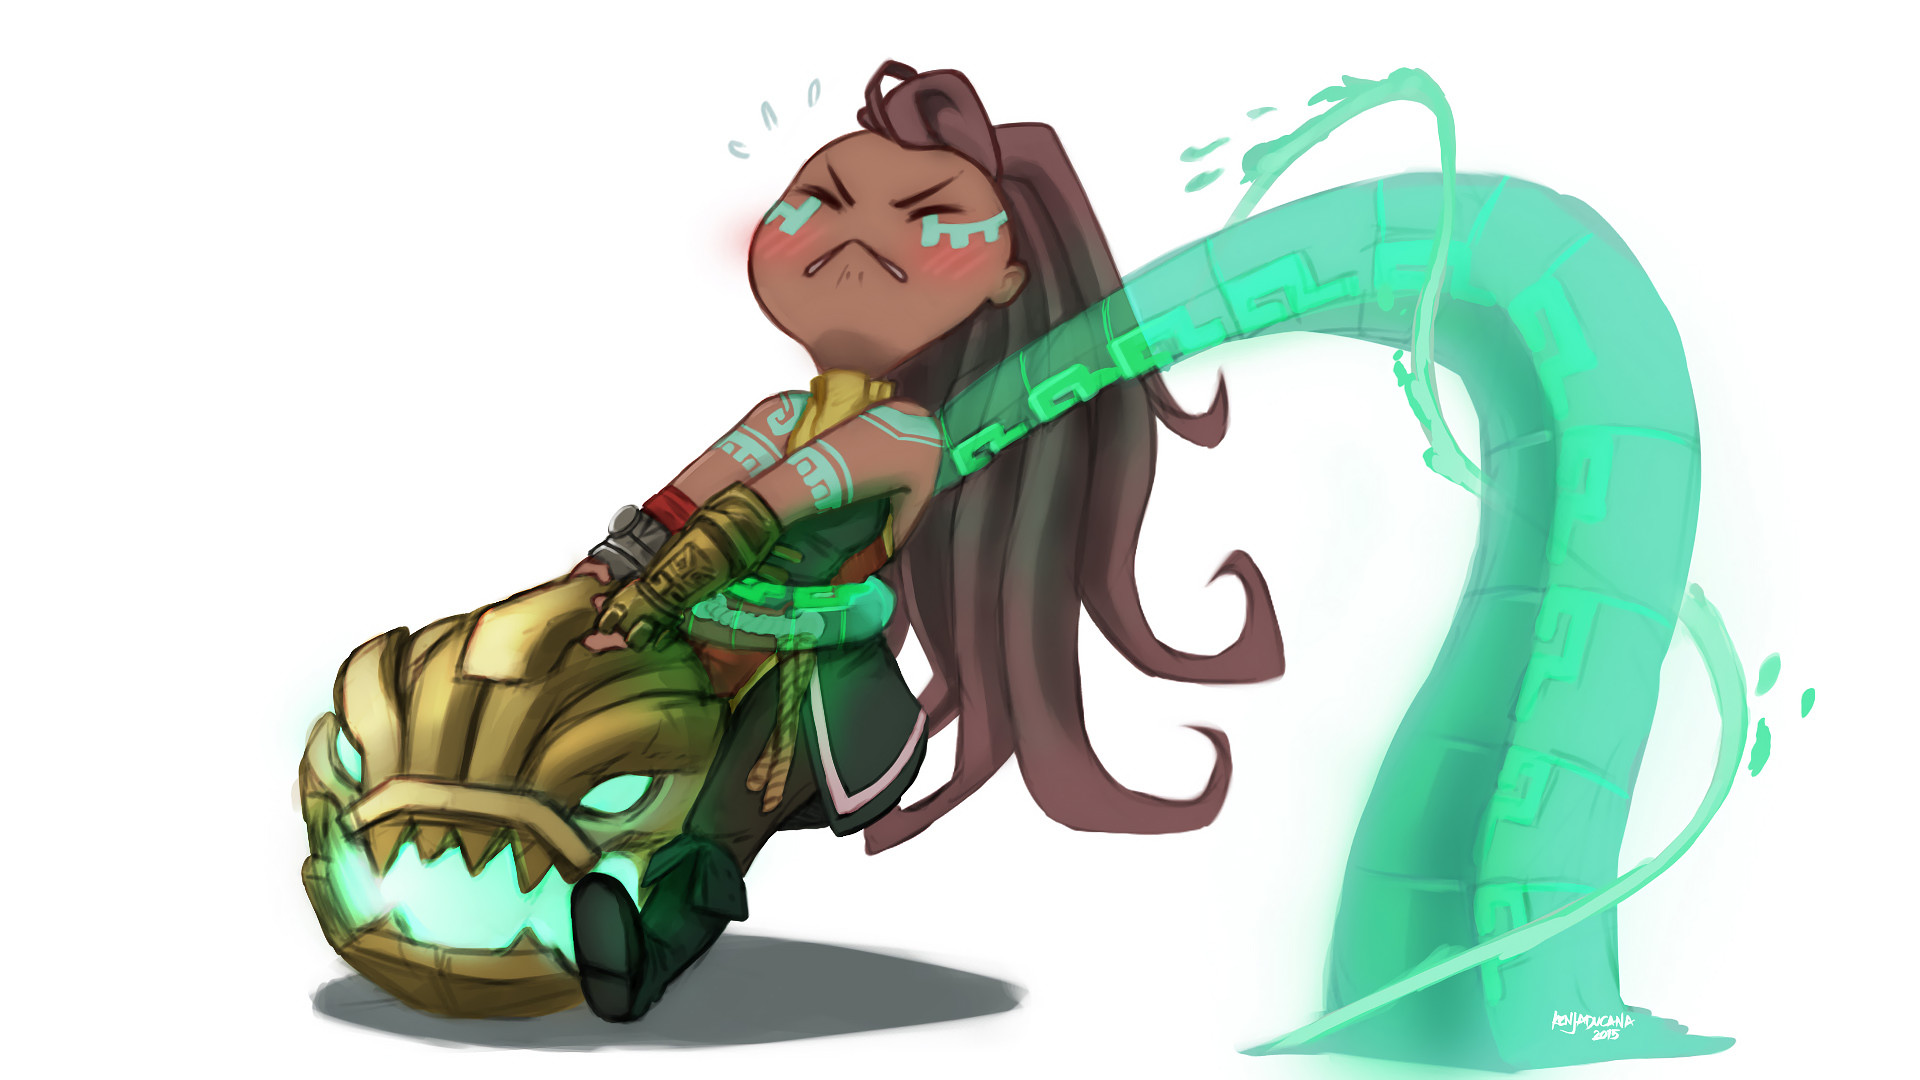 Res: 1920x1080, Chibi Illaoi by jeng3x HD Wallpaper Fan Art Artwork League of Legends lol